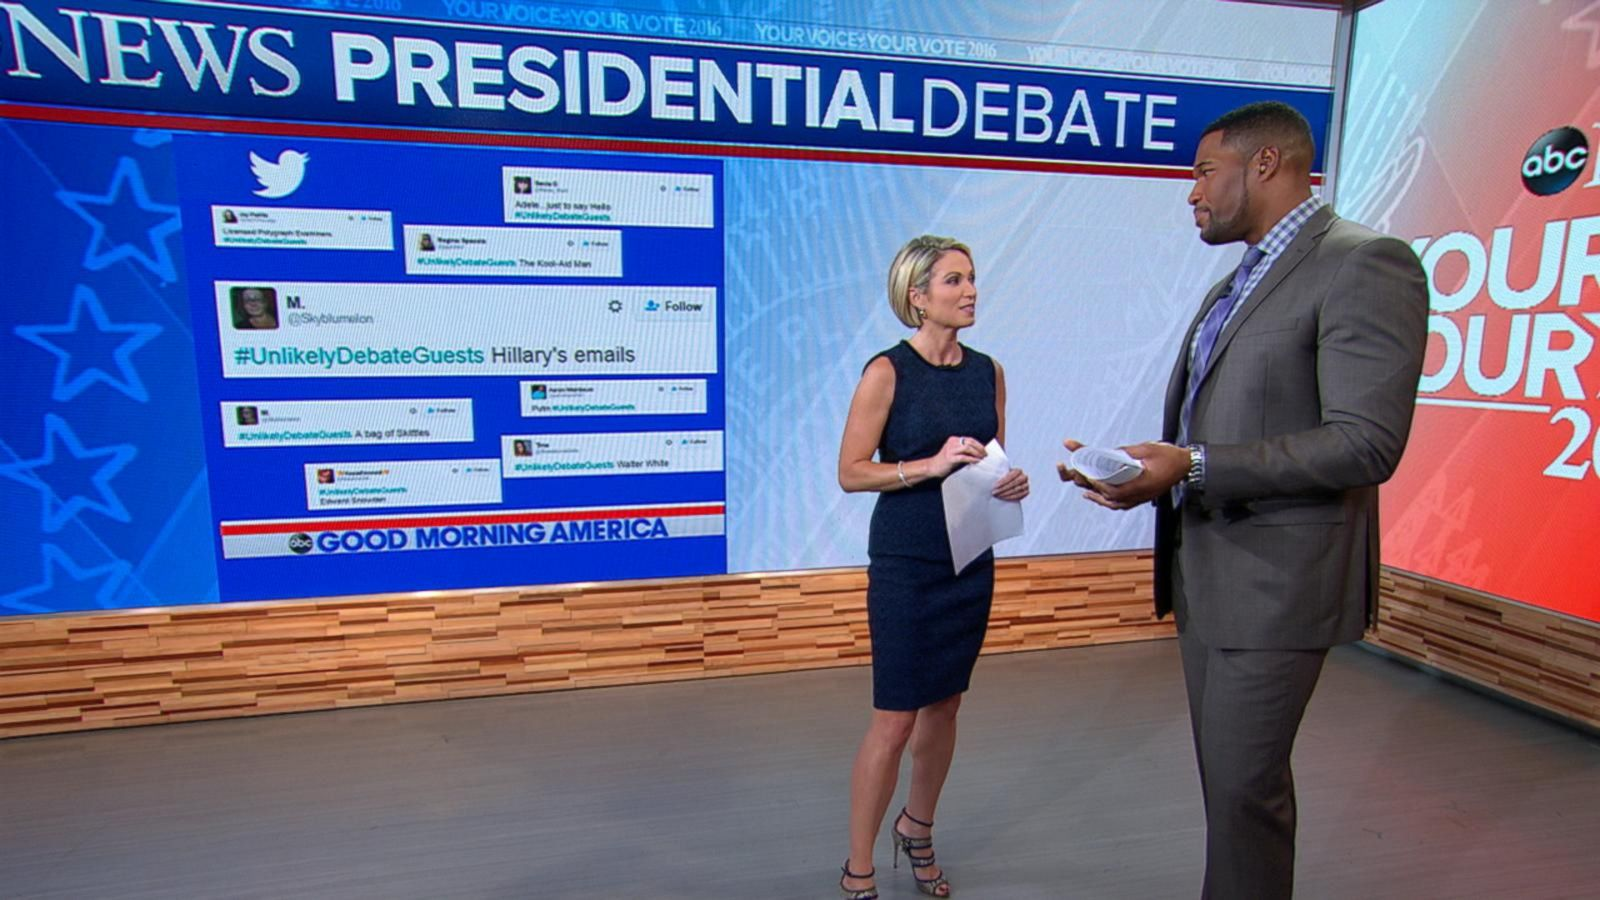 VIDEO: Biggest Moments on Social Media from the Debate